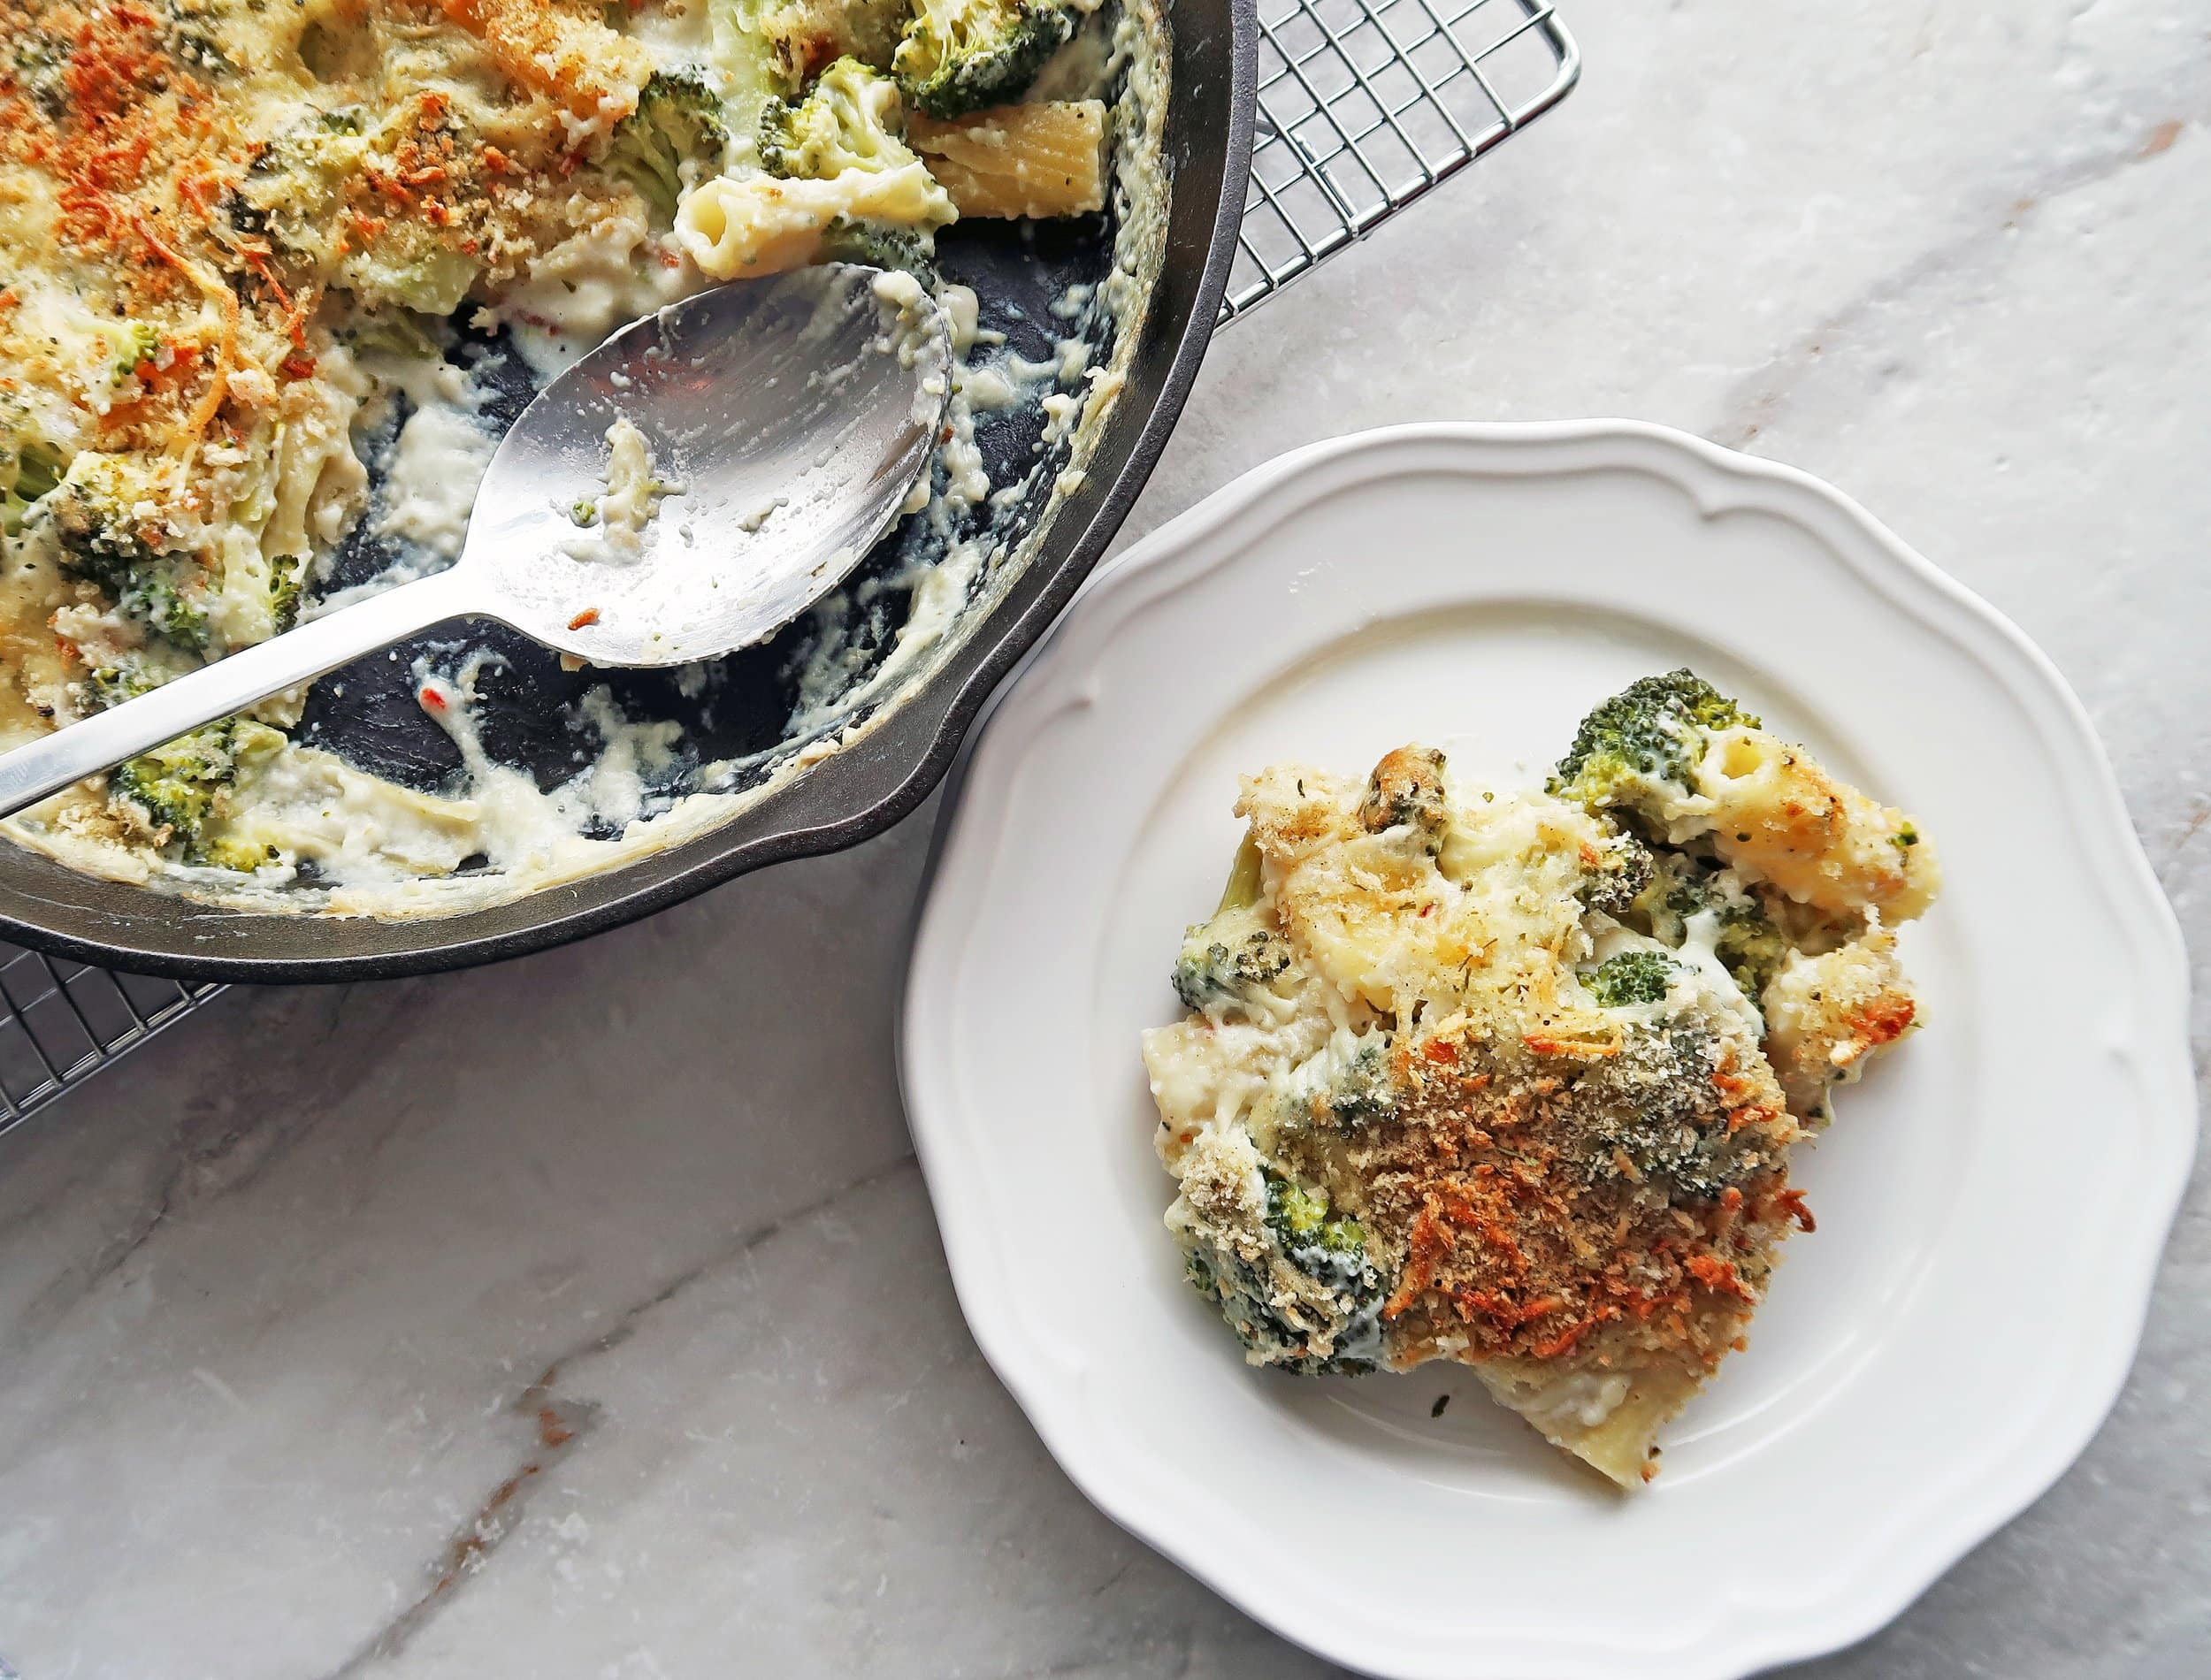 A plate of baked pasta with broccoli and white cheese sauce.